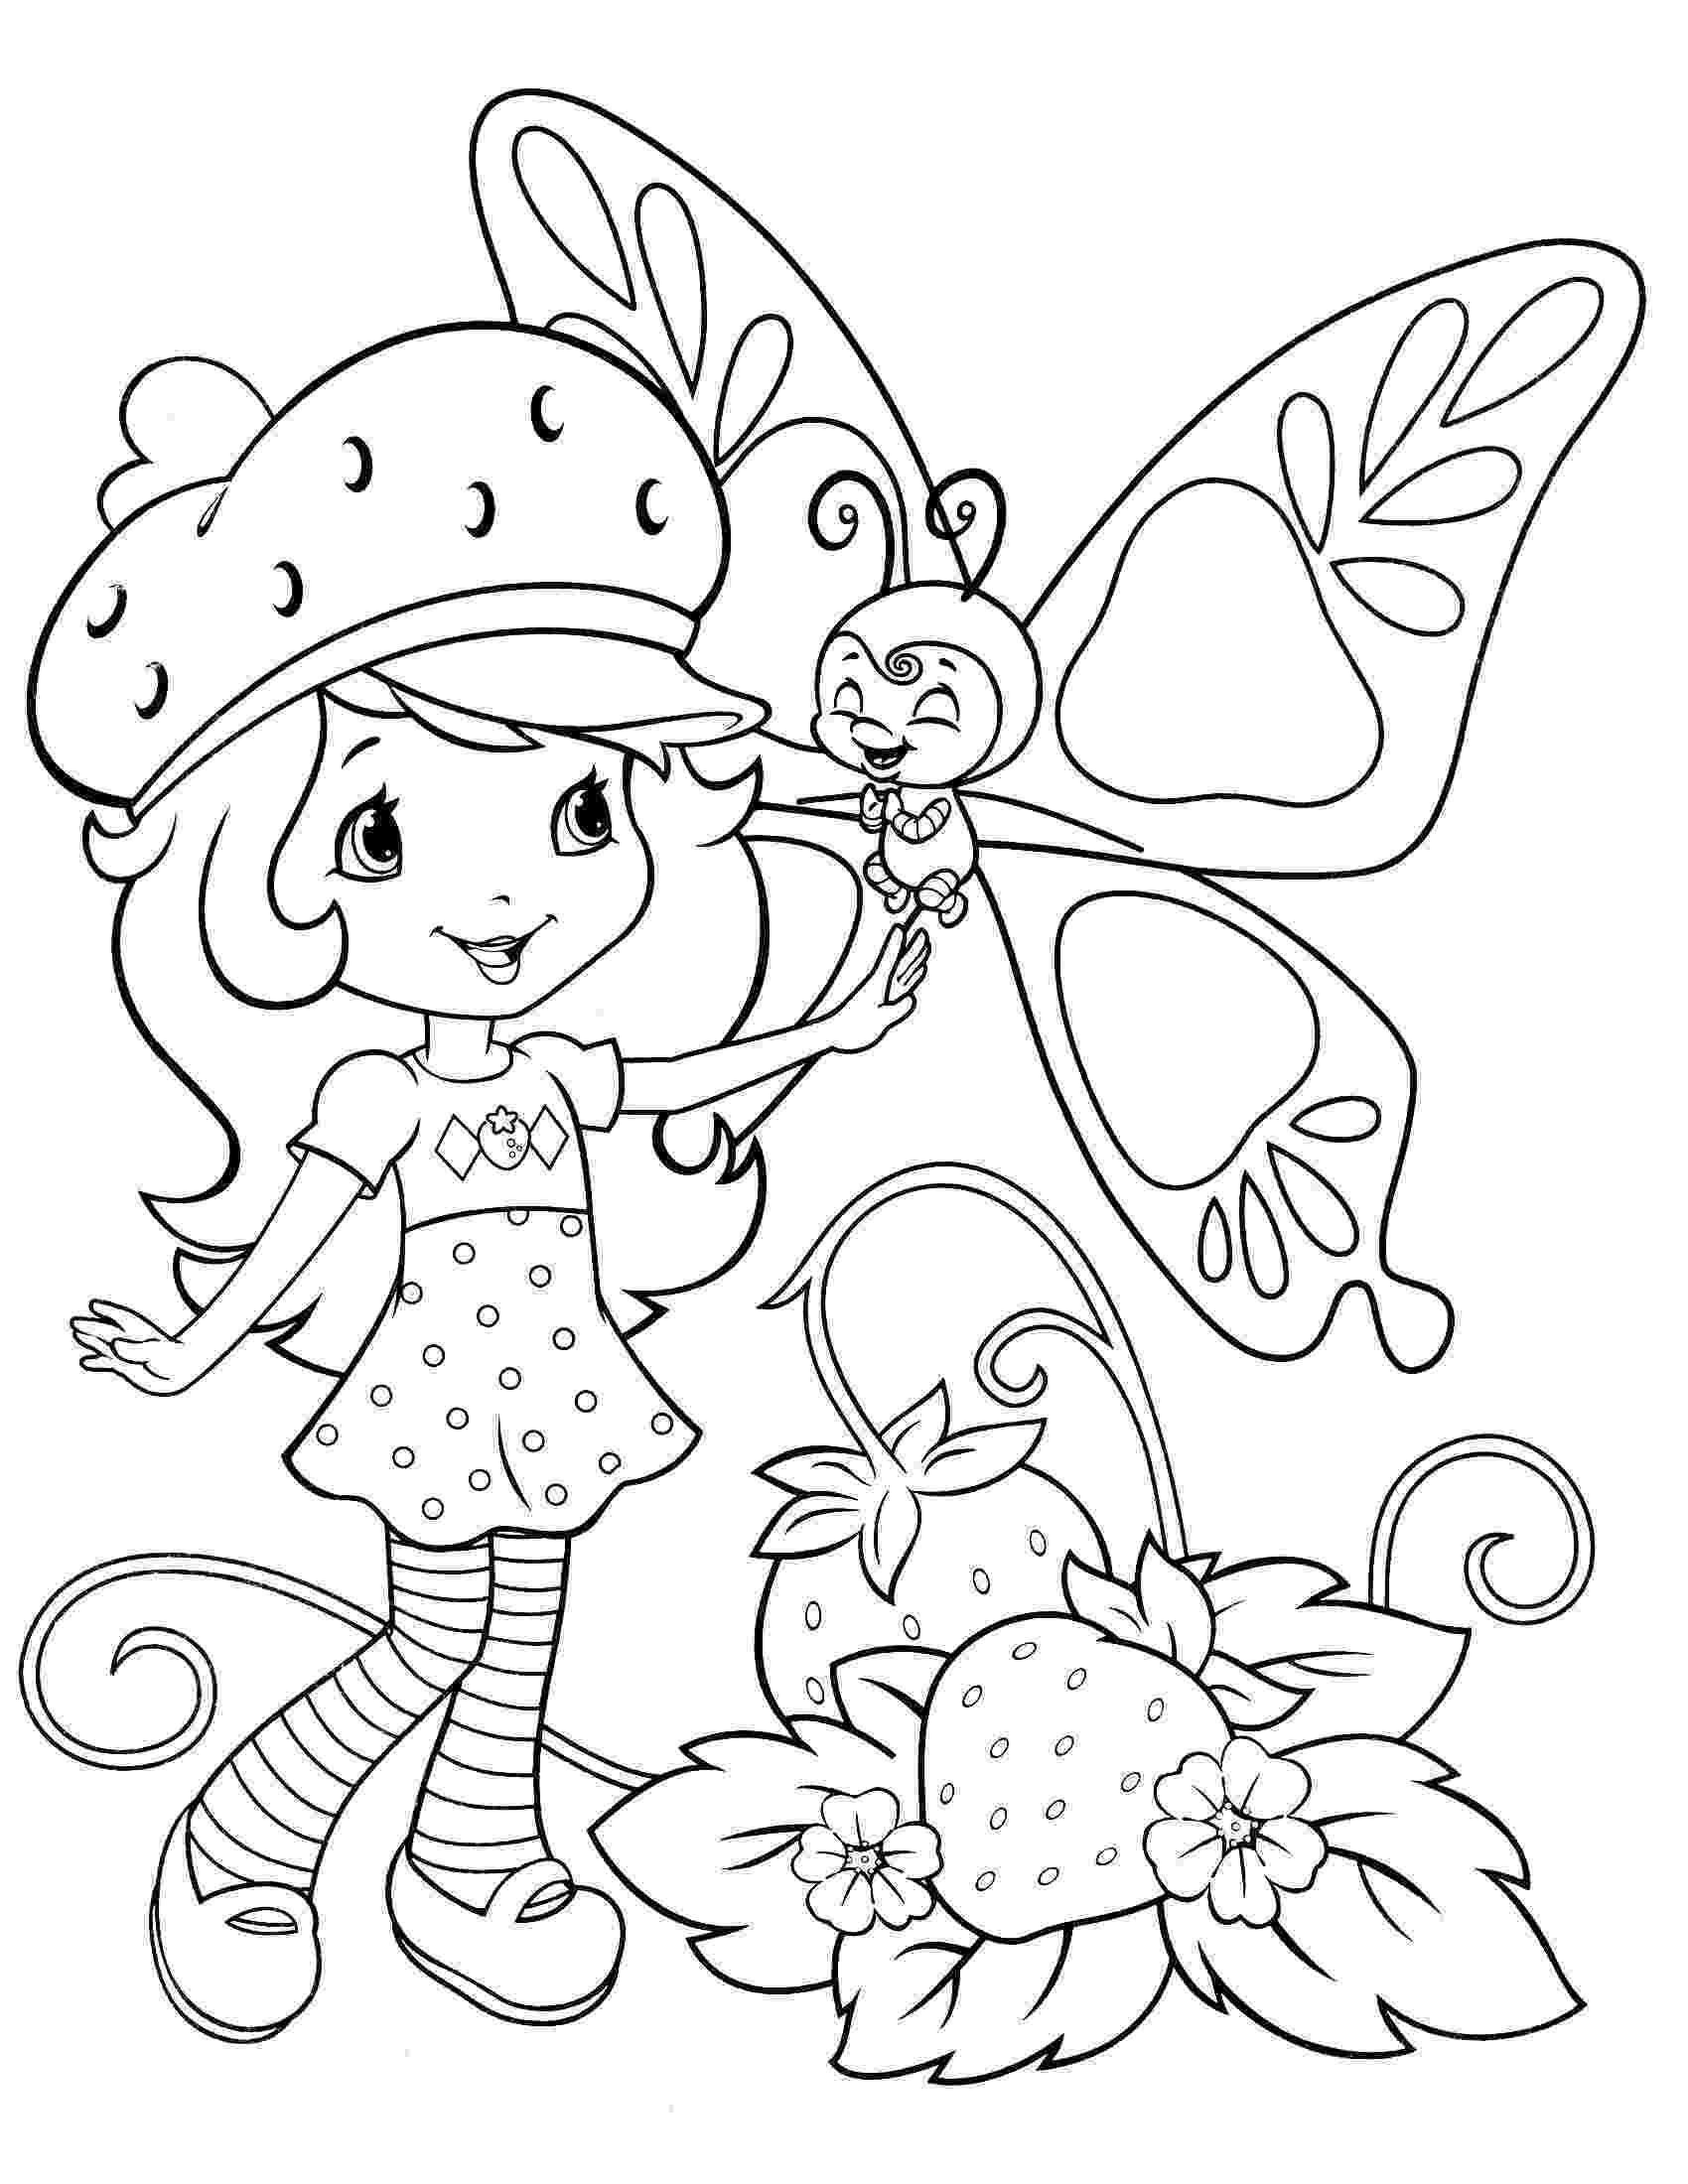 pictures of strawberry shortcake strawberry shortcake coloring pages butterfly aas shortcake strawberry of pictures